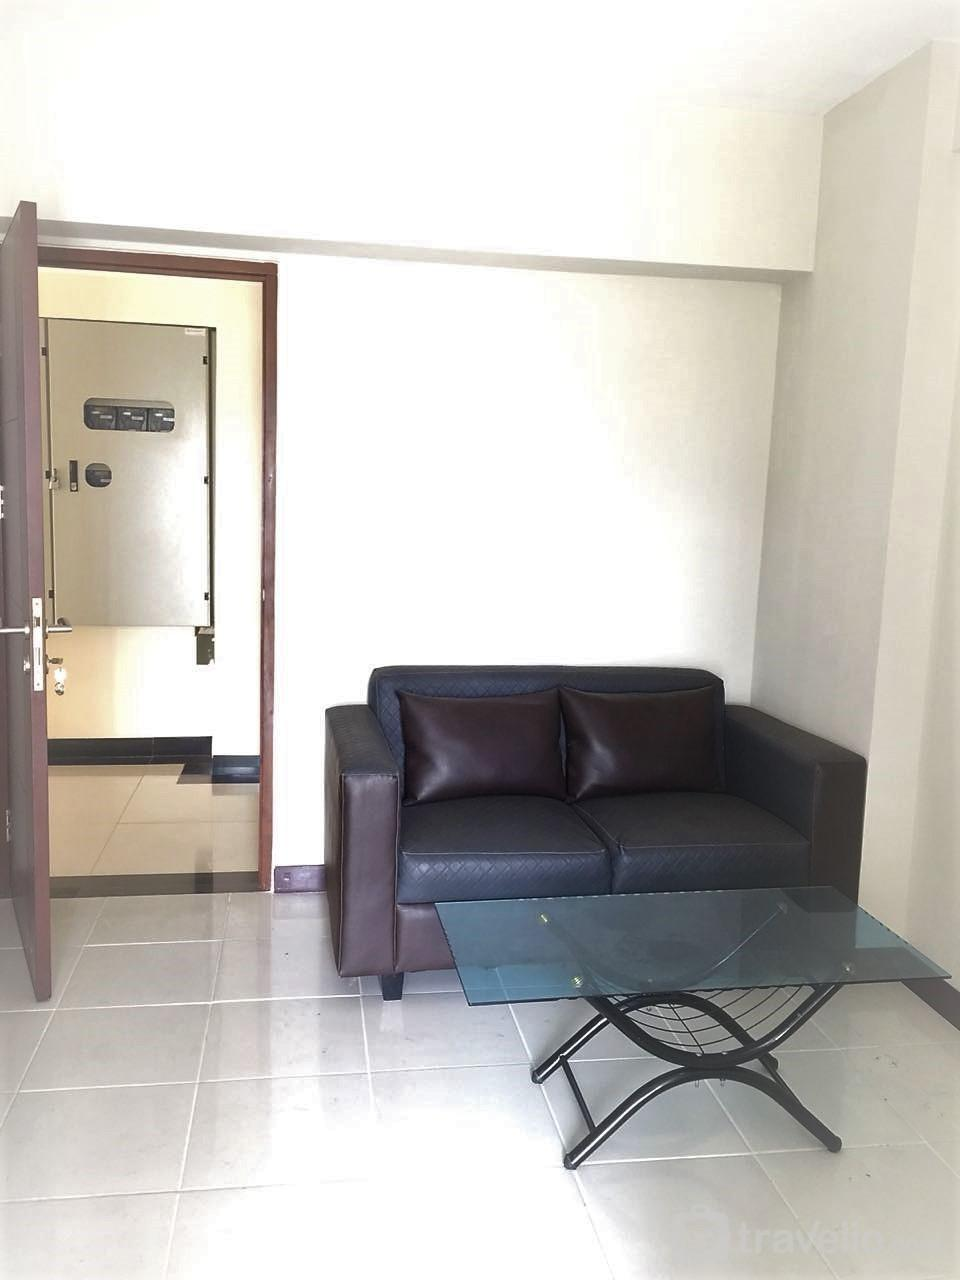 Lagoon Apartment  - Spacious 1BR  B105 @ Lagoon Resort Apartement